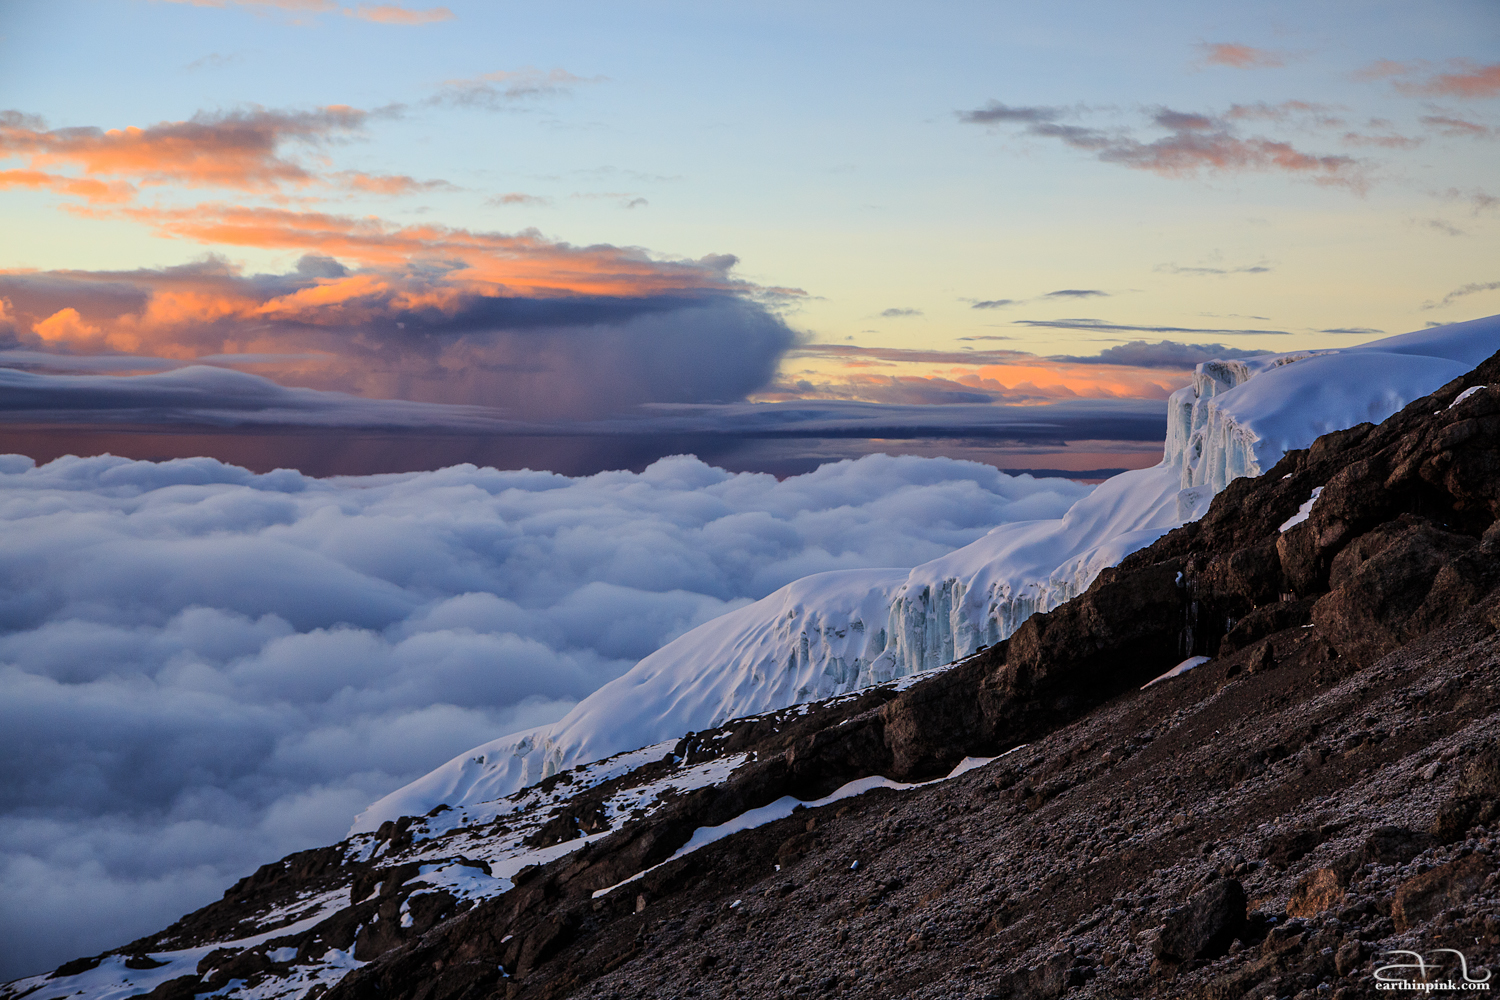 Glaciers on the slope of Mt. Kilimanjaro, Tanzania